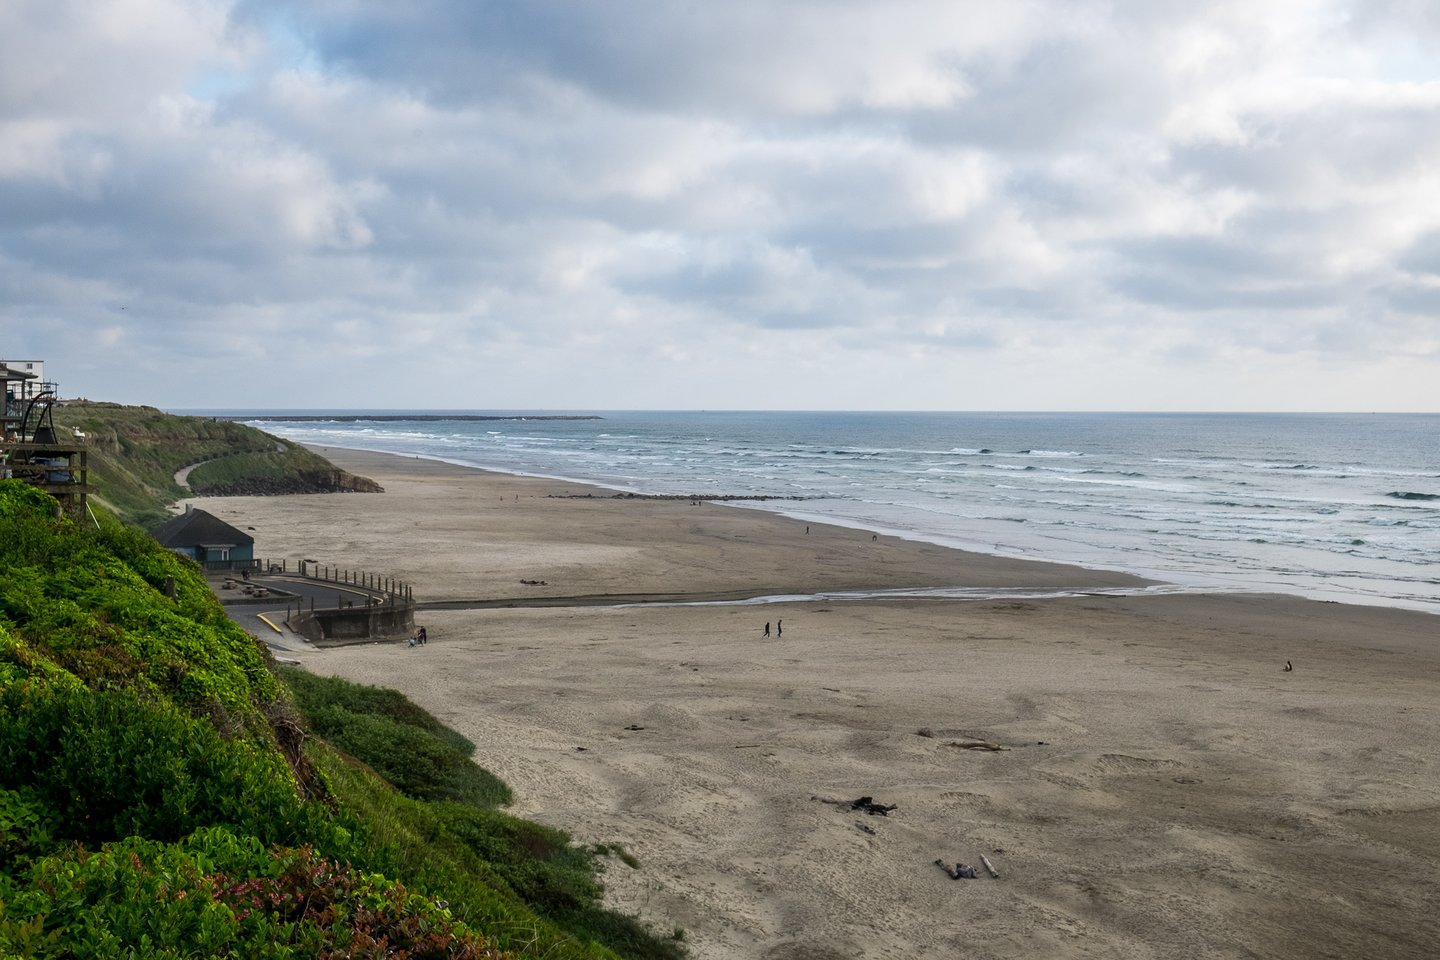 Take a walk along the beach and pass by historic Nye Beach turnaround.